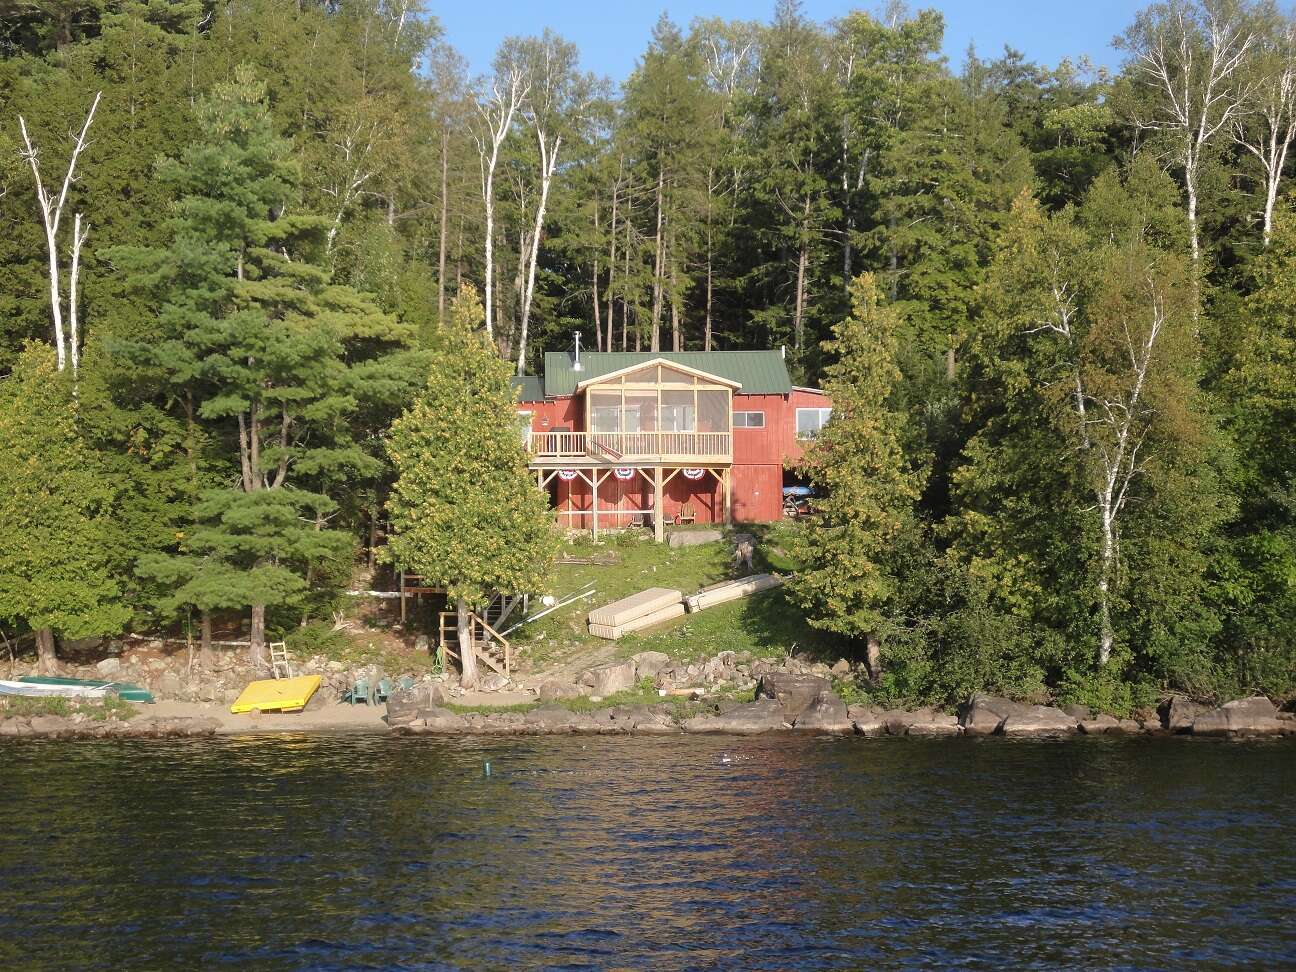 Vacation Property for Sale at 113 Nesa Road Schroon Lake, New York 12870 United States